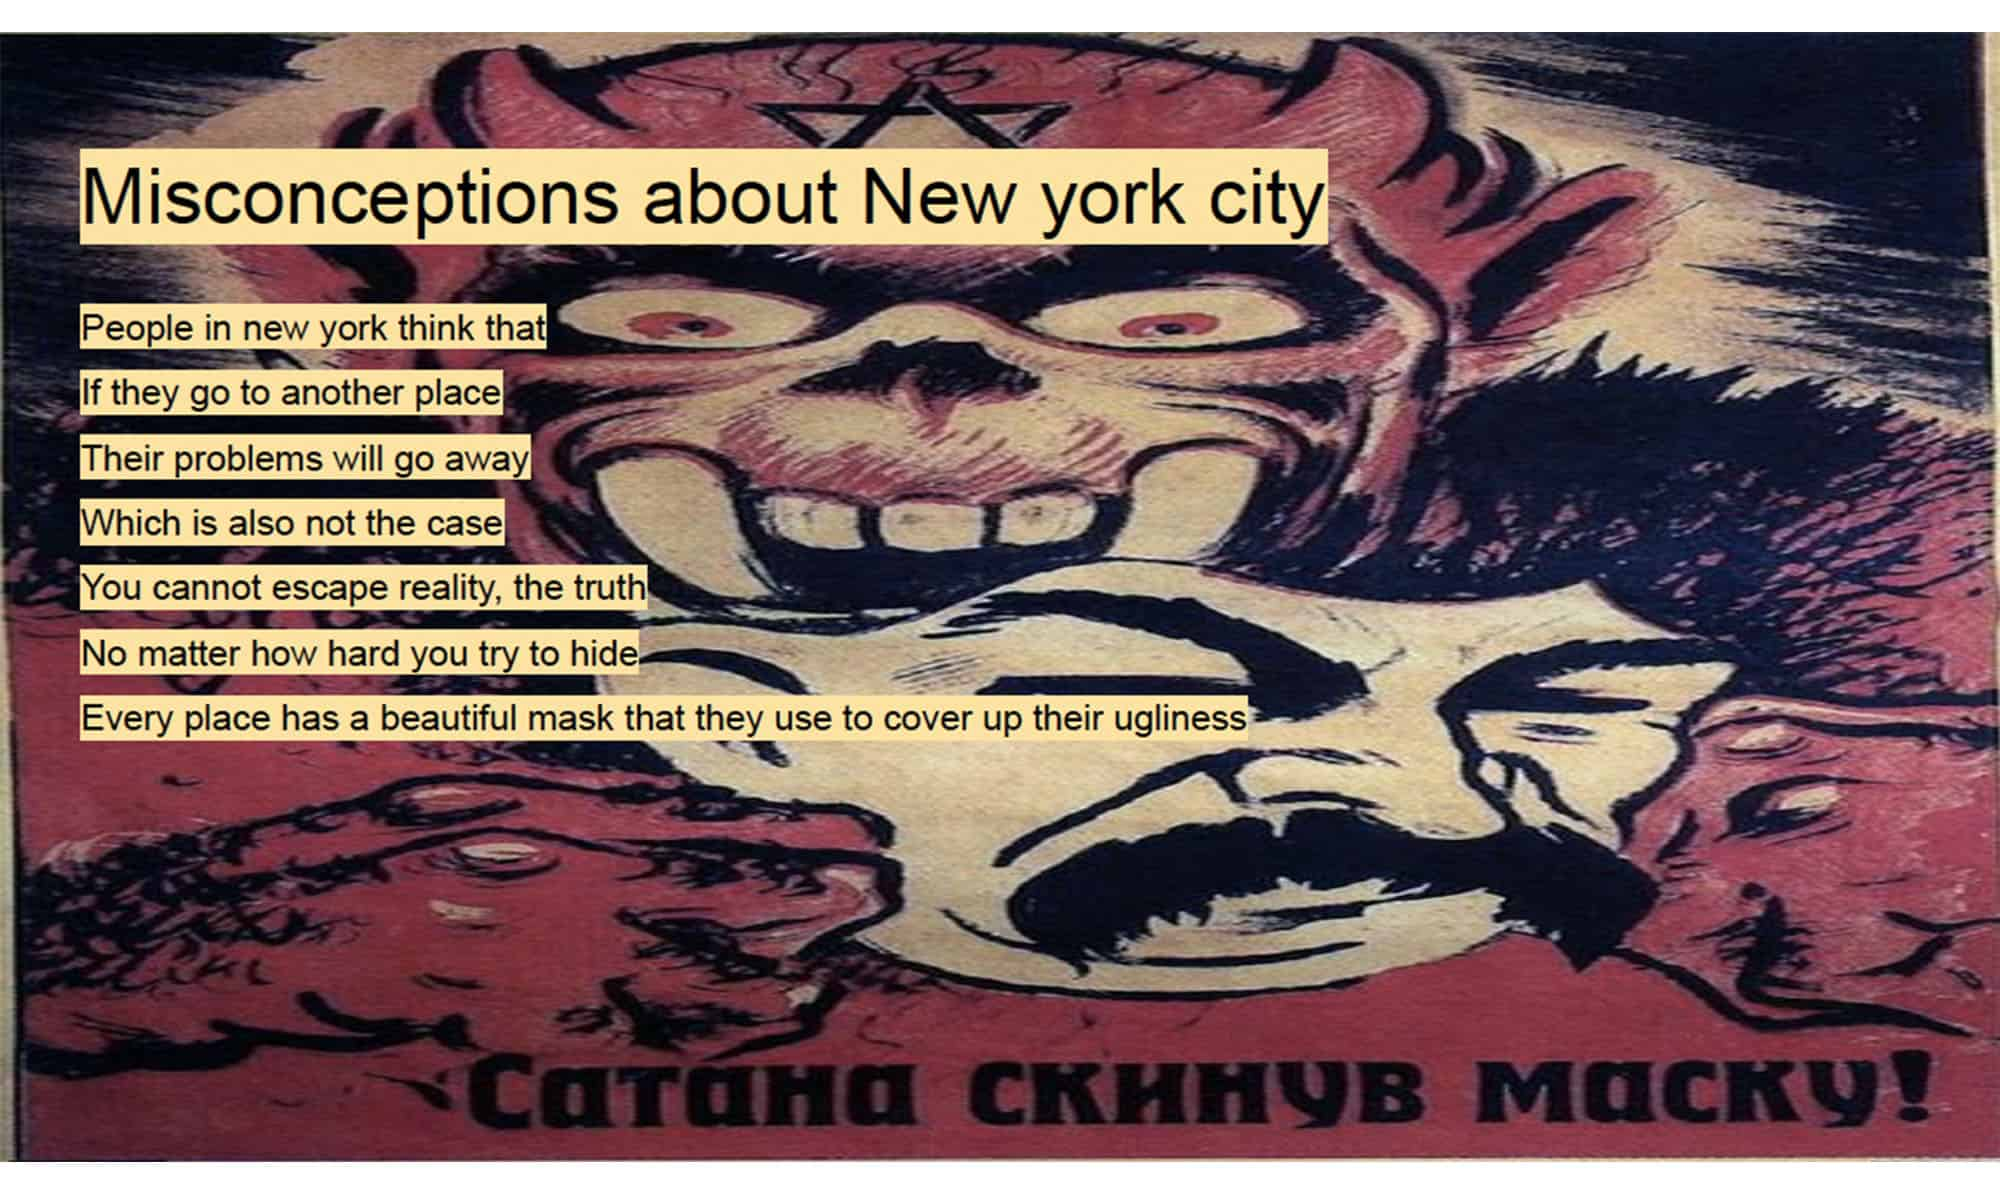 howl high misconceptions about new york city collage